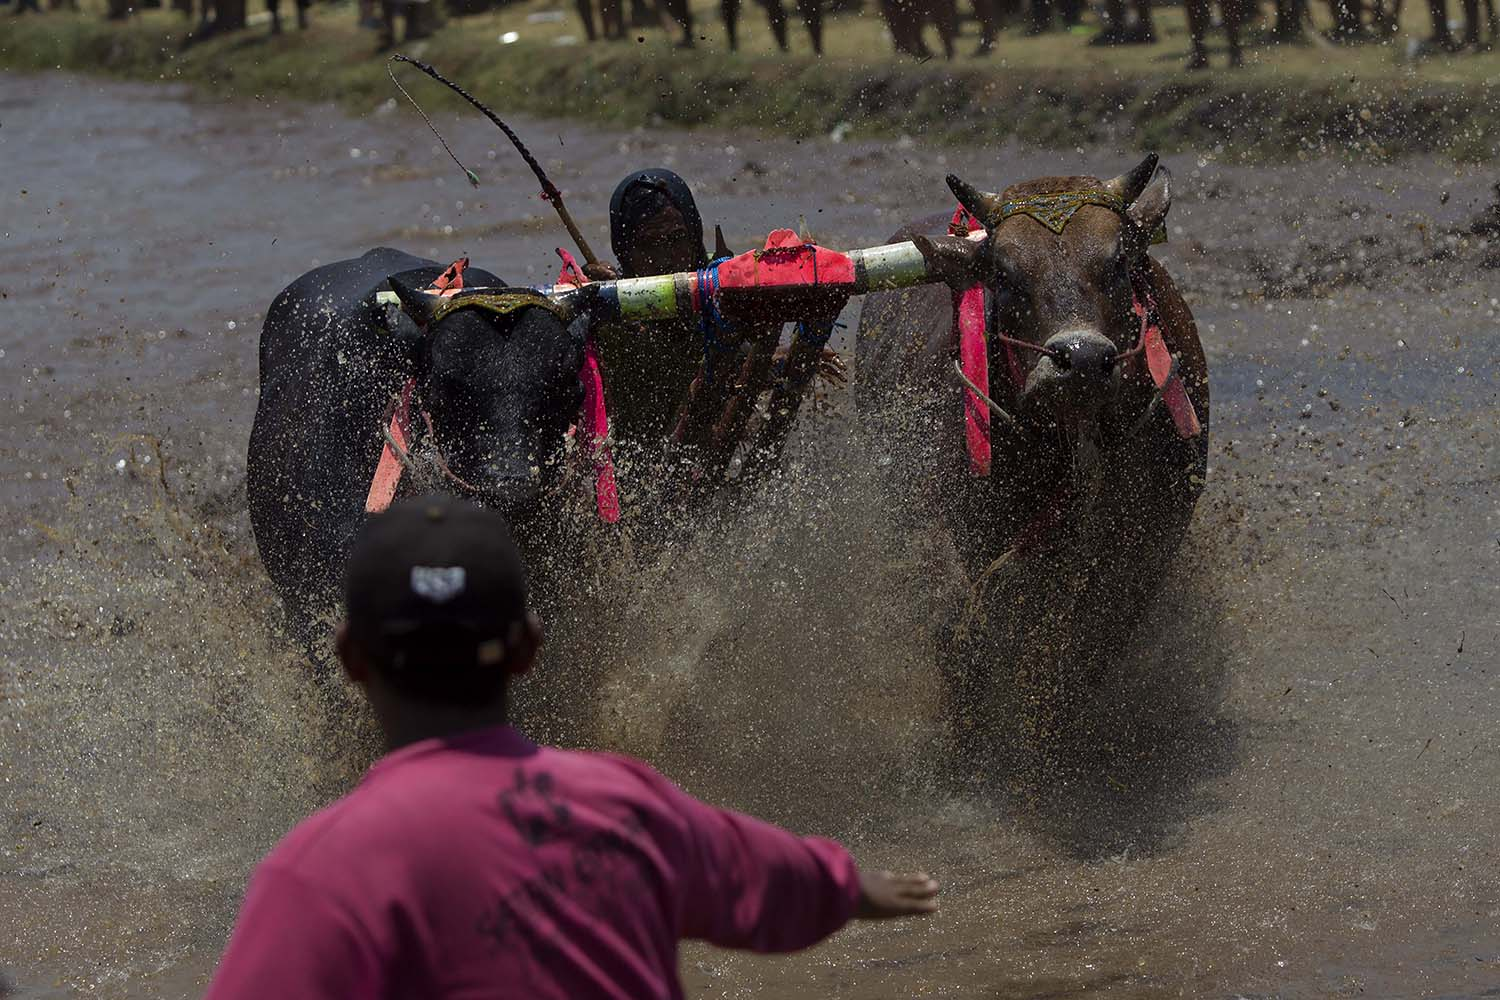 A rider controls his bulls as they are about to cross the finish line while a helper tries to keep them from exiting the arena to protect spectators and other participants. JP/Sigit Pamungkas